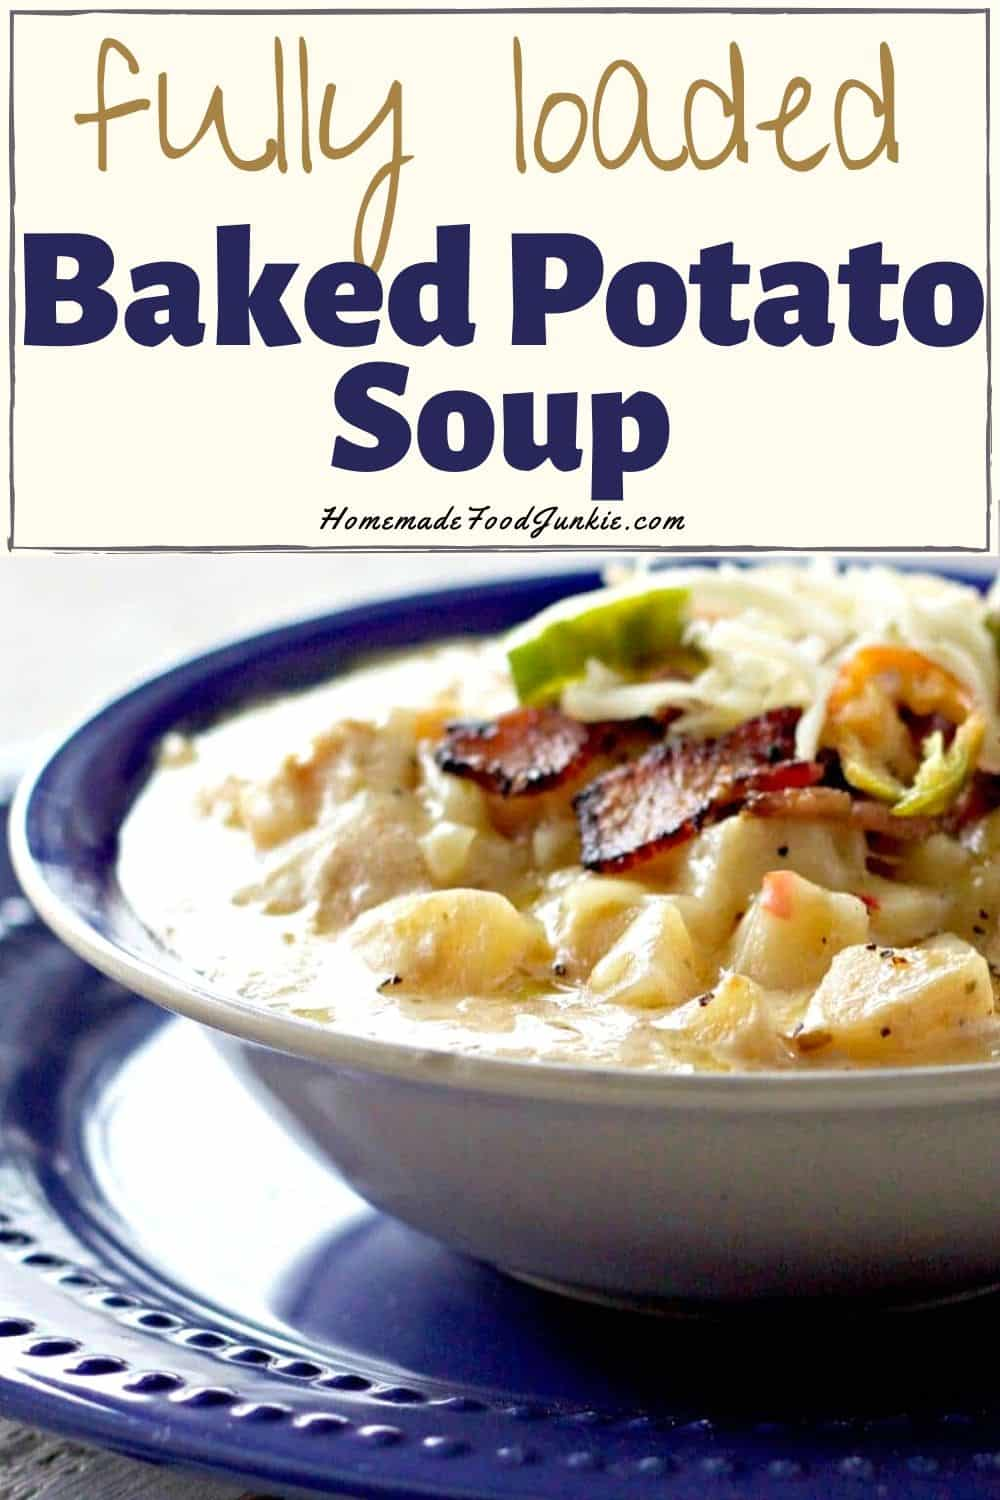 Fully loaded baked potato soup-pin image